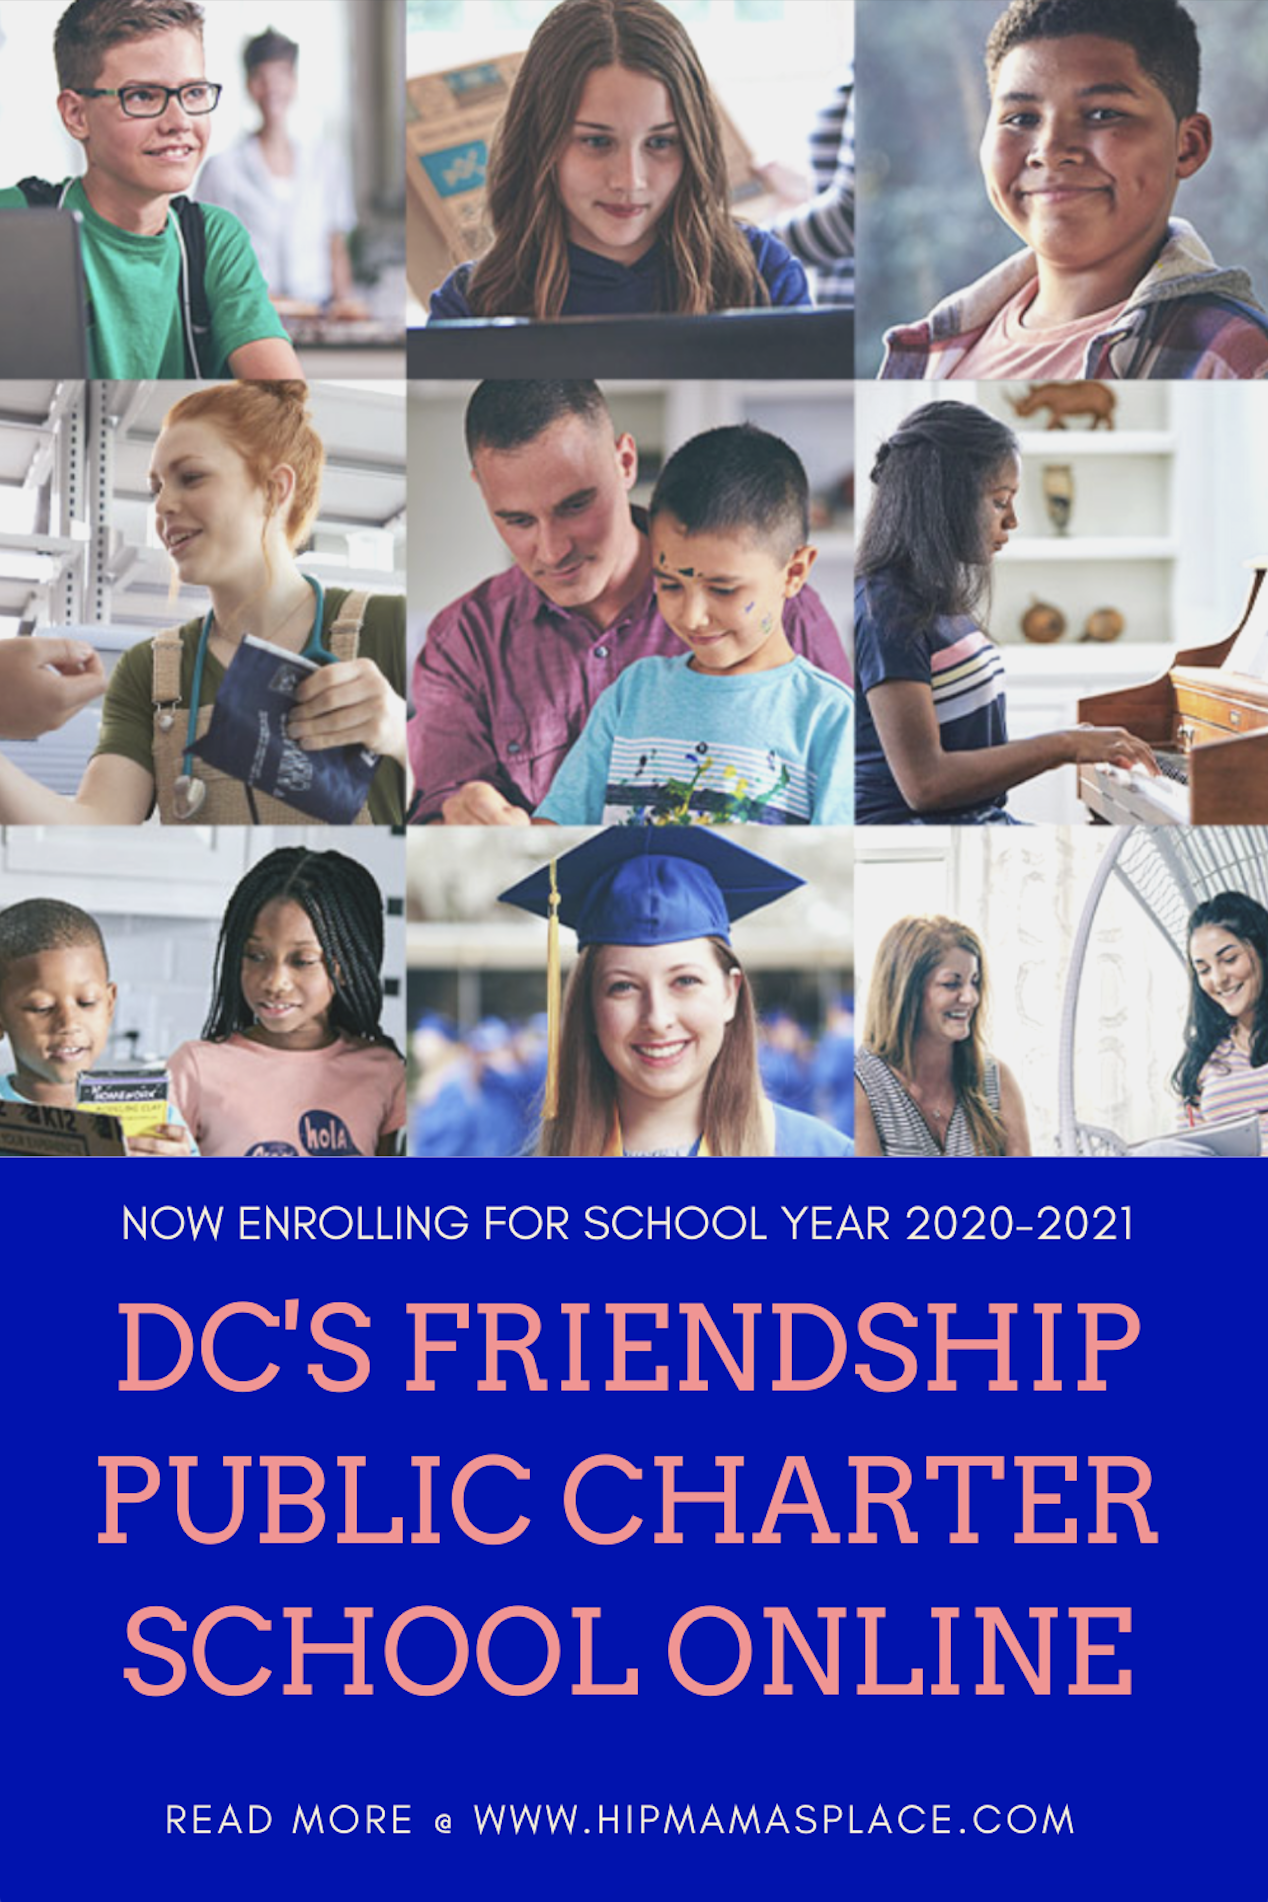 Friendship Public Charter School Online- a tuition-free public education for grades K-8 students in the District of Columbia, is now open for enrollment! #ad #education #WashingtonDC #FPCSO #DCCharterSchool #k12 #onlineeducation #onlinelearning #onlineclass #onlineschool #learningisfun #charterschool #charterschoolonline